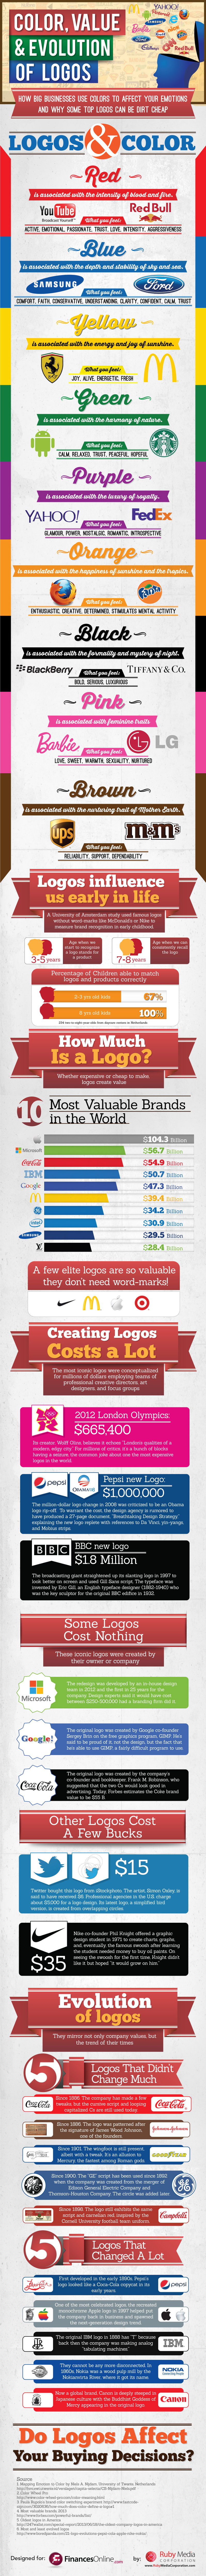 Color Psychology, Value and Evolution of World's Famous Company Logos (Infographic)